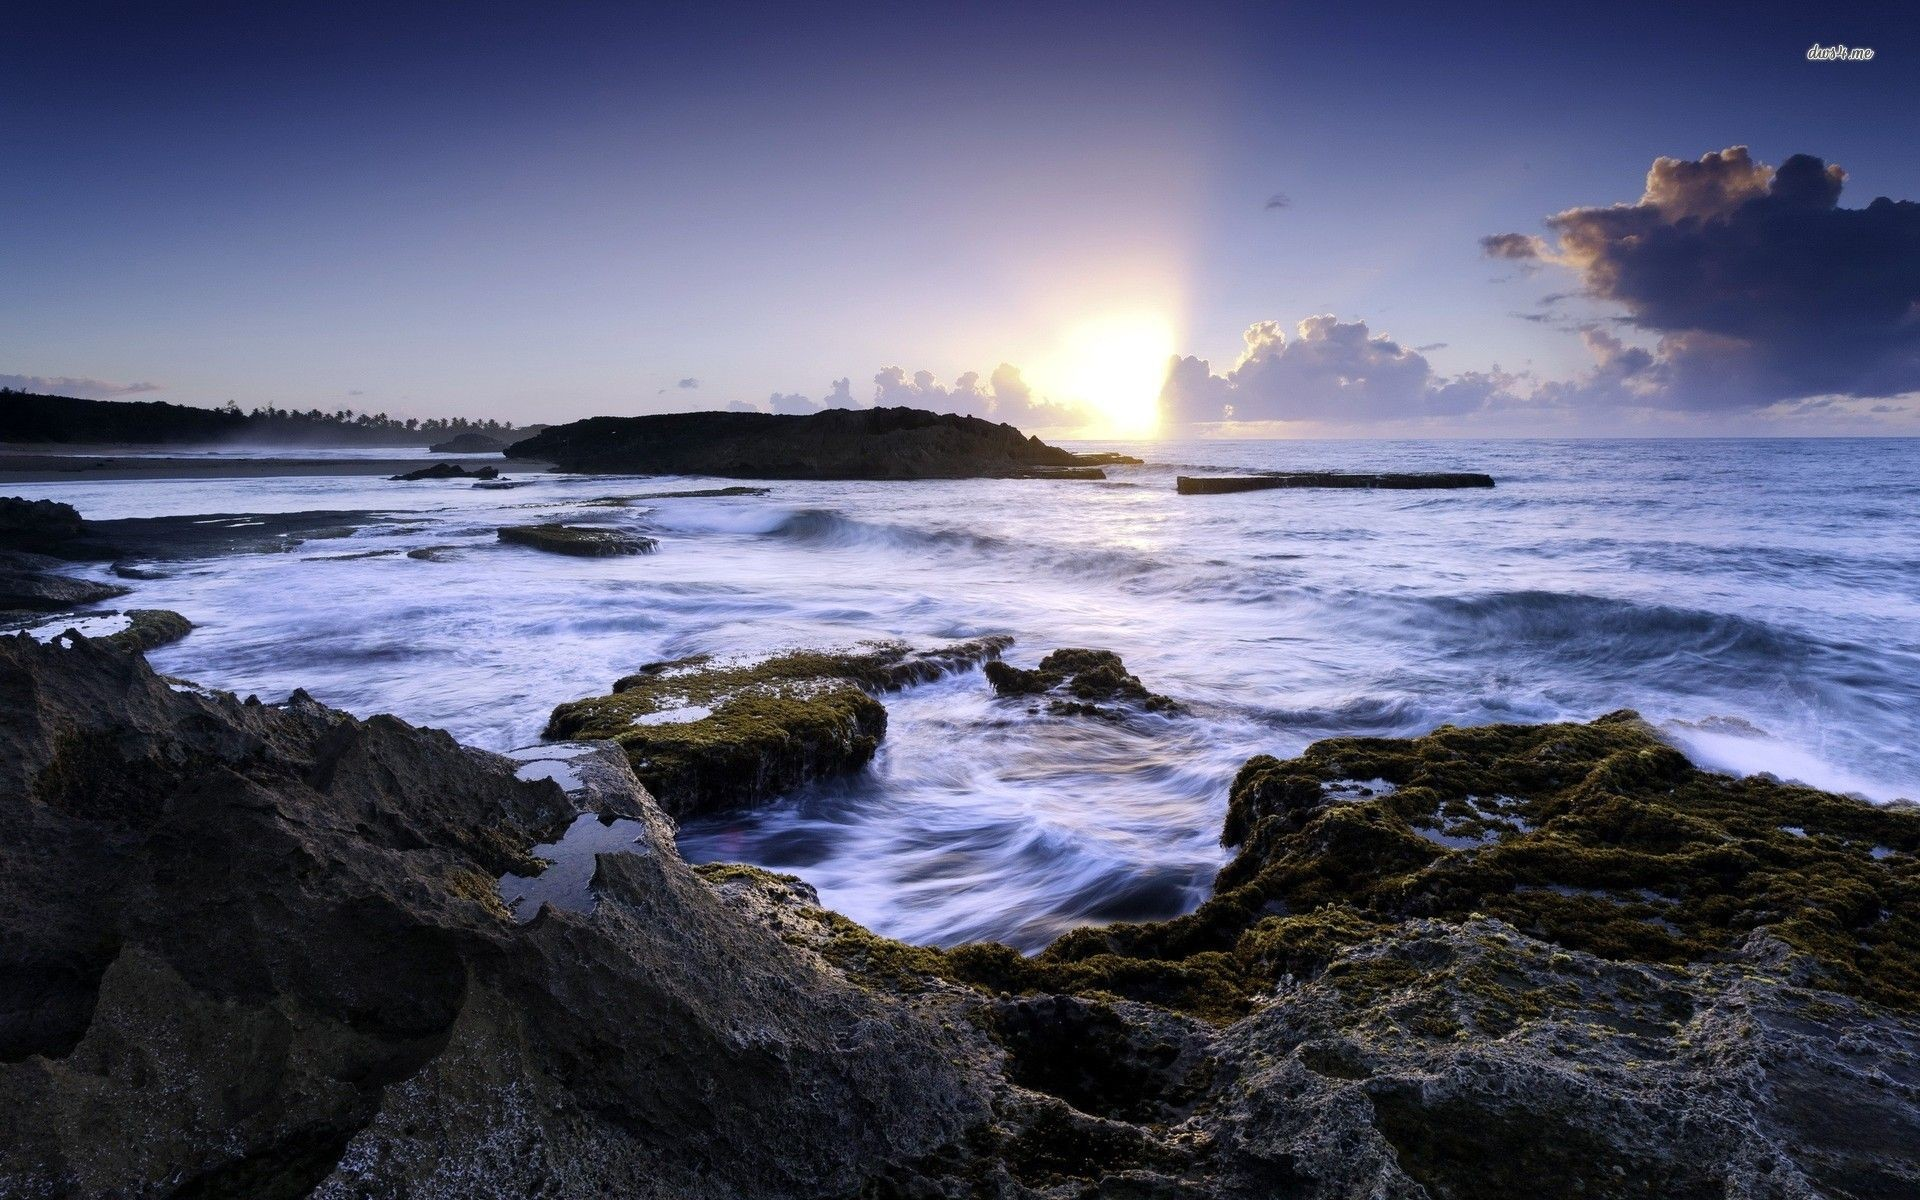 Wallpapers Of Puerto Rico – Wallpaper Cave